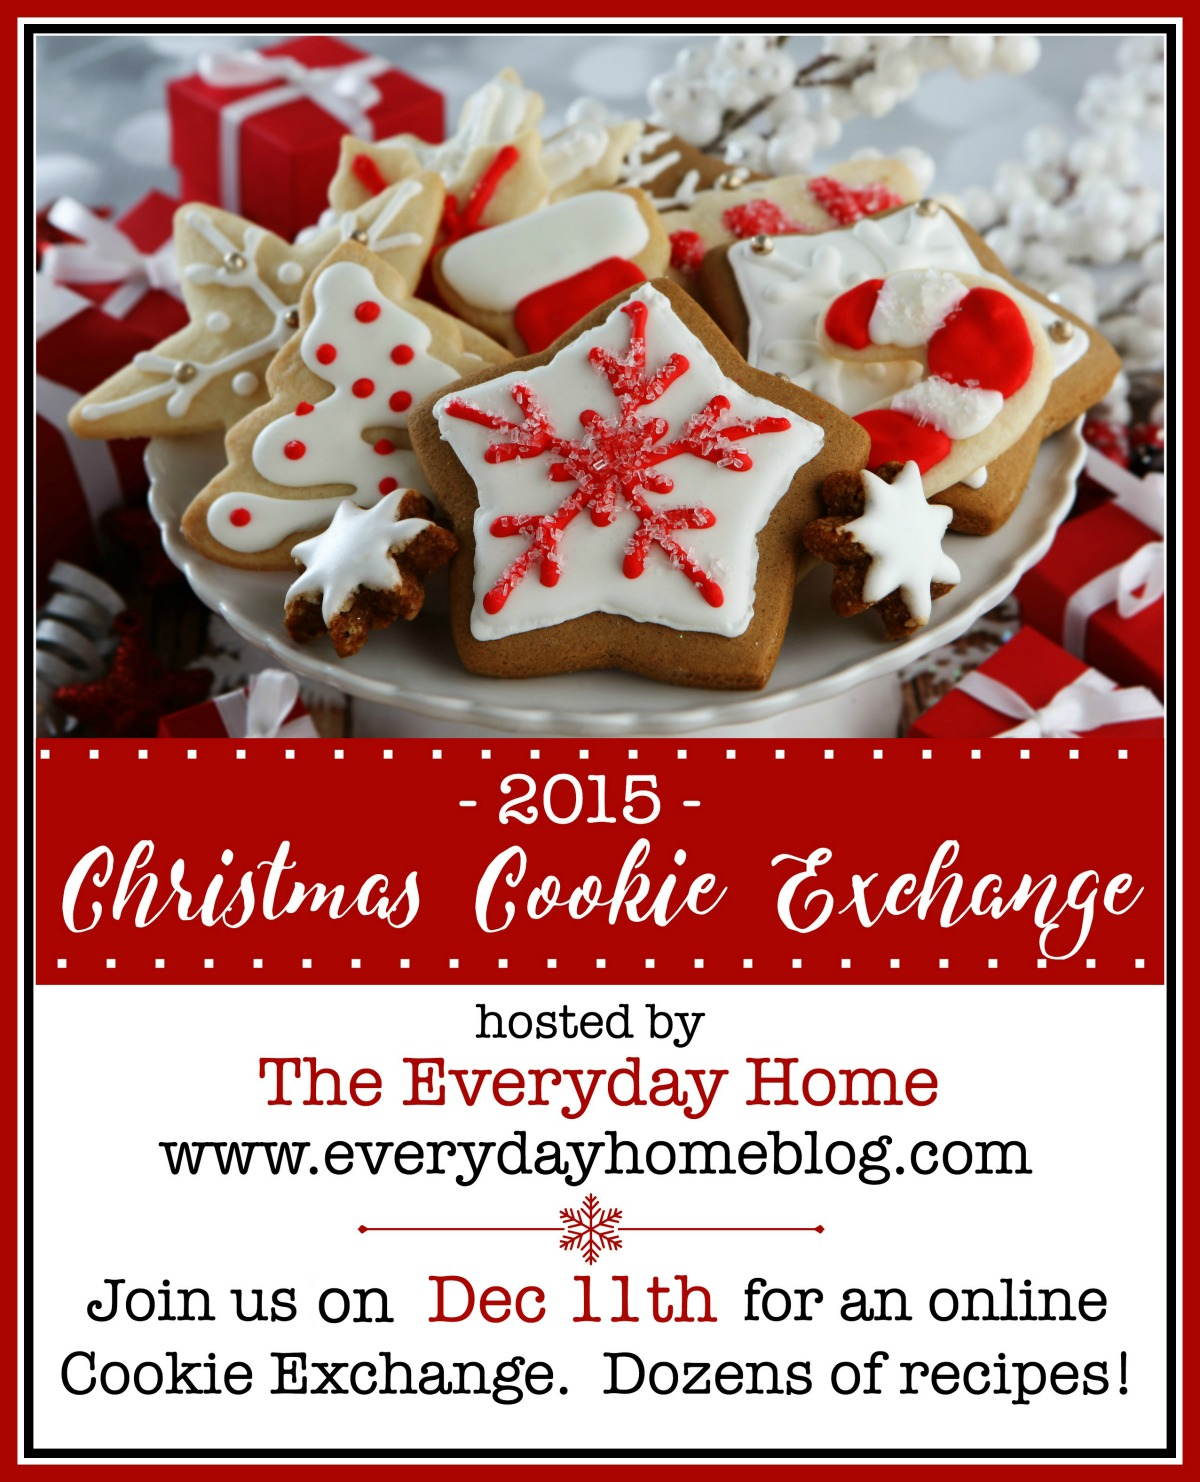 The Everyday Home 2015 Virtual Christmas Cookie Exchange